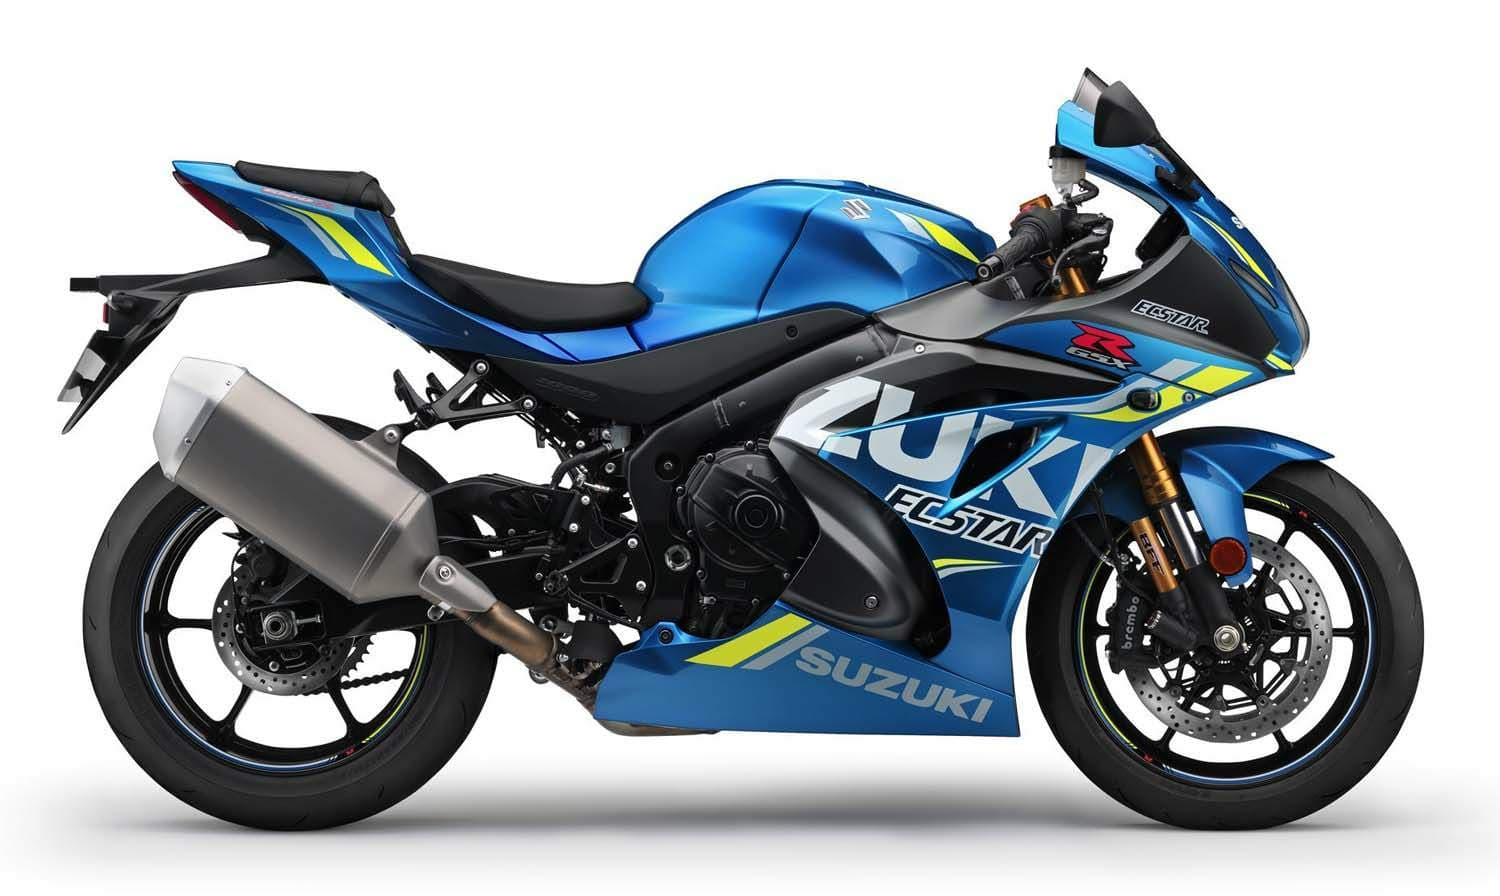 13 suzuki gsx r1000r 2018 wallpapers hd. Black Bedroom Furniture Sets. Home Design Ideas